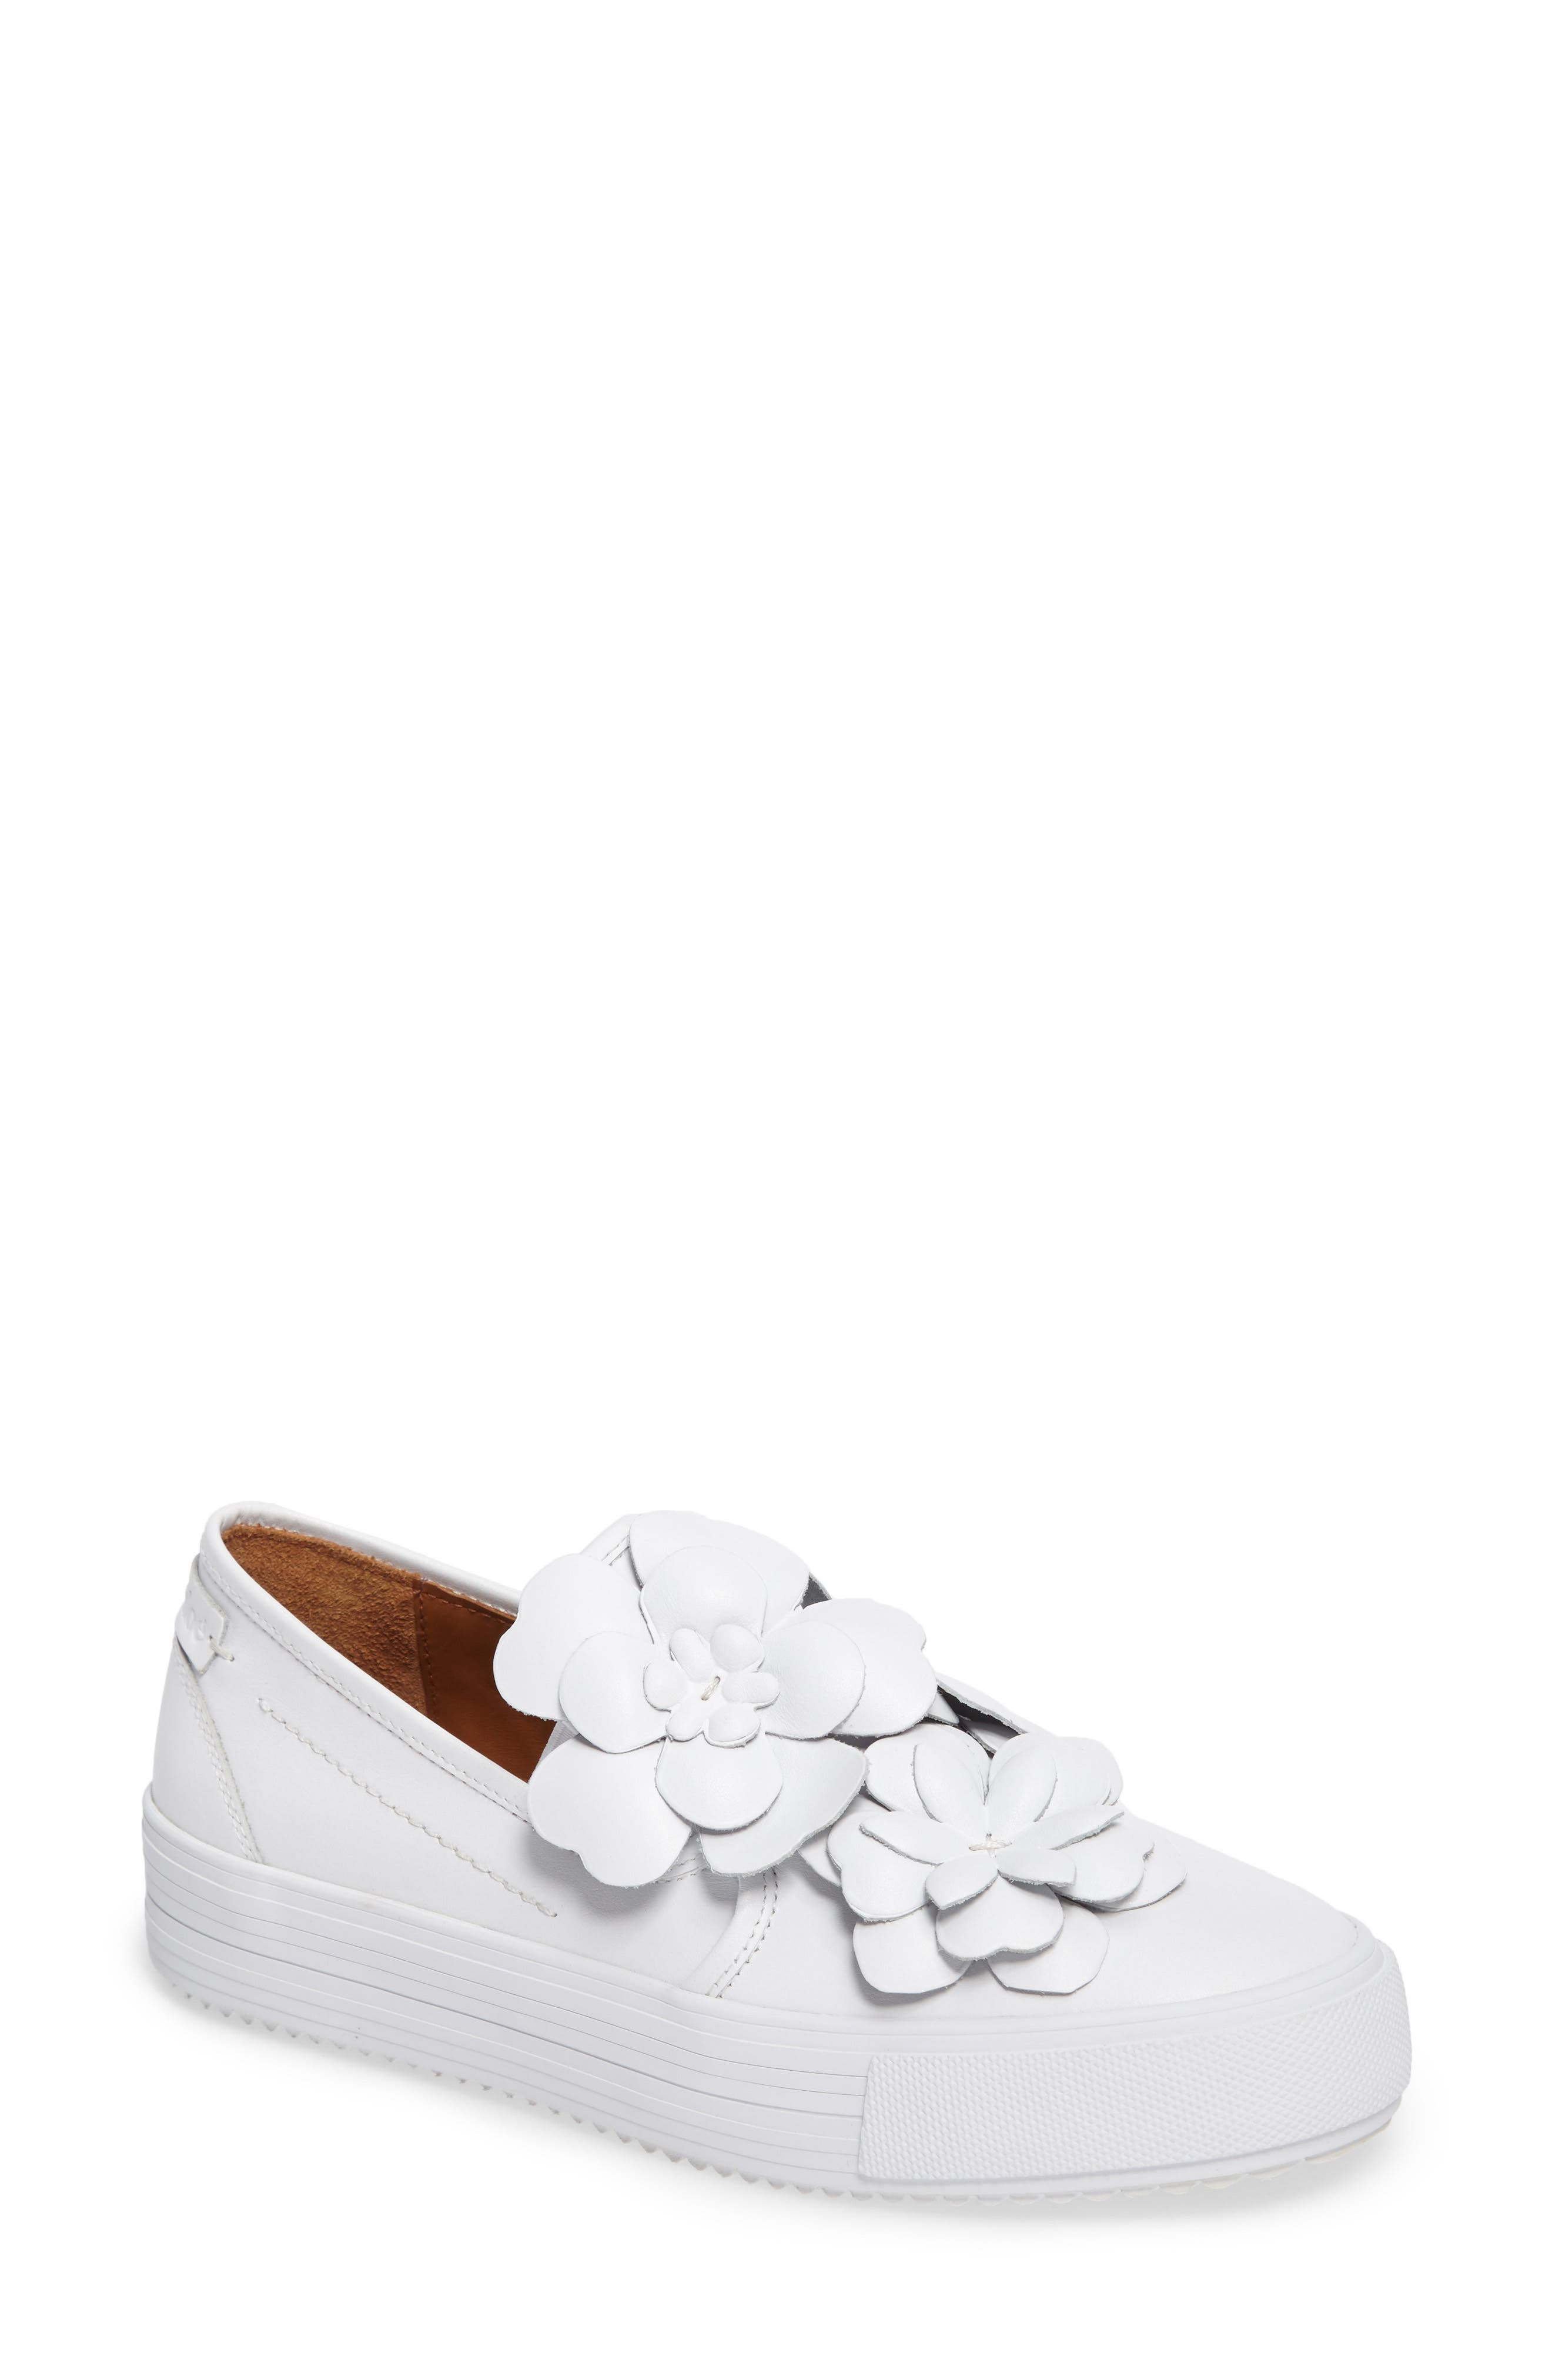 Main Image - See by Chloé Vera Floral Appliqué Slip-On Sneaker (Women)